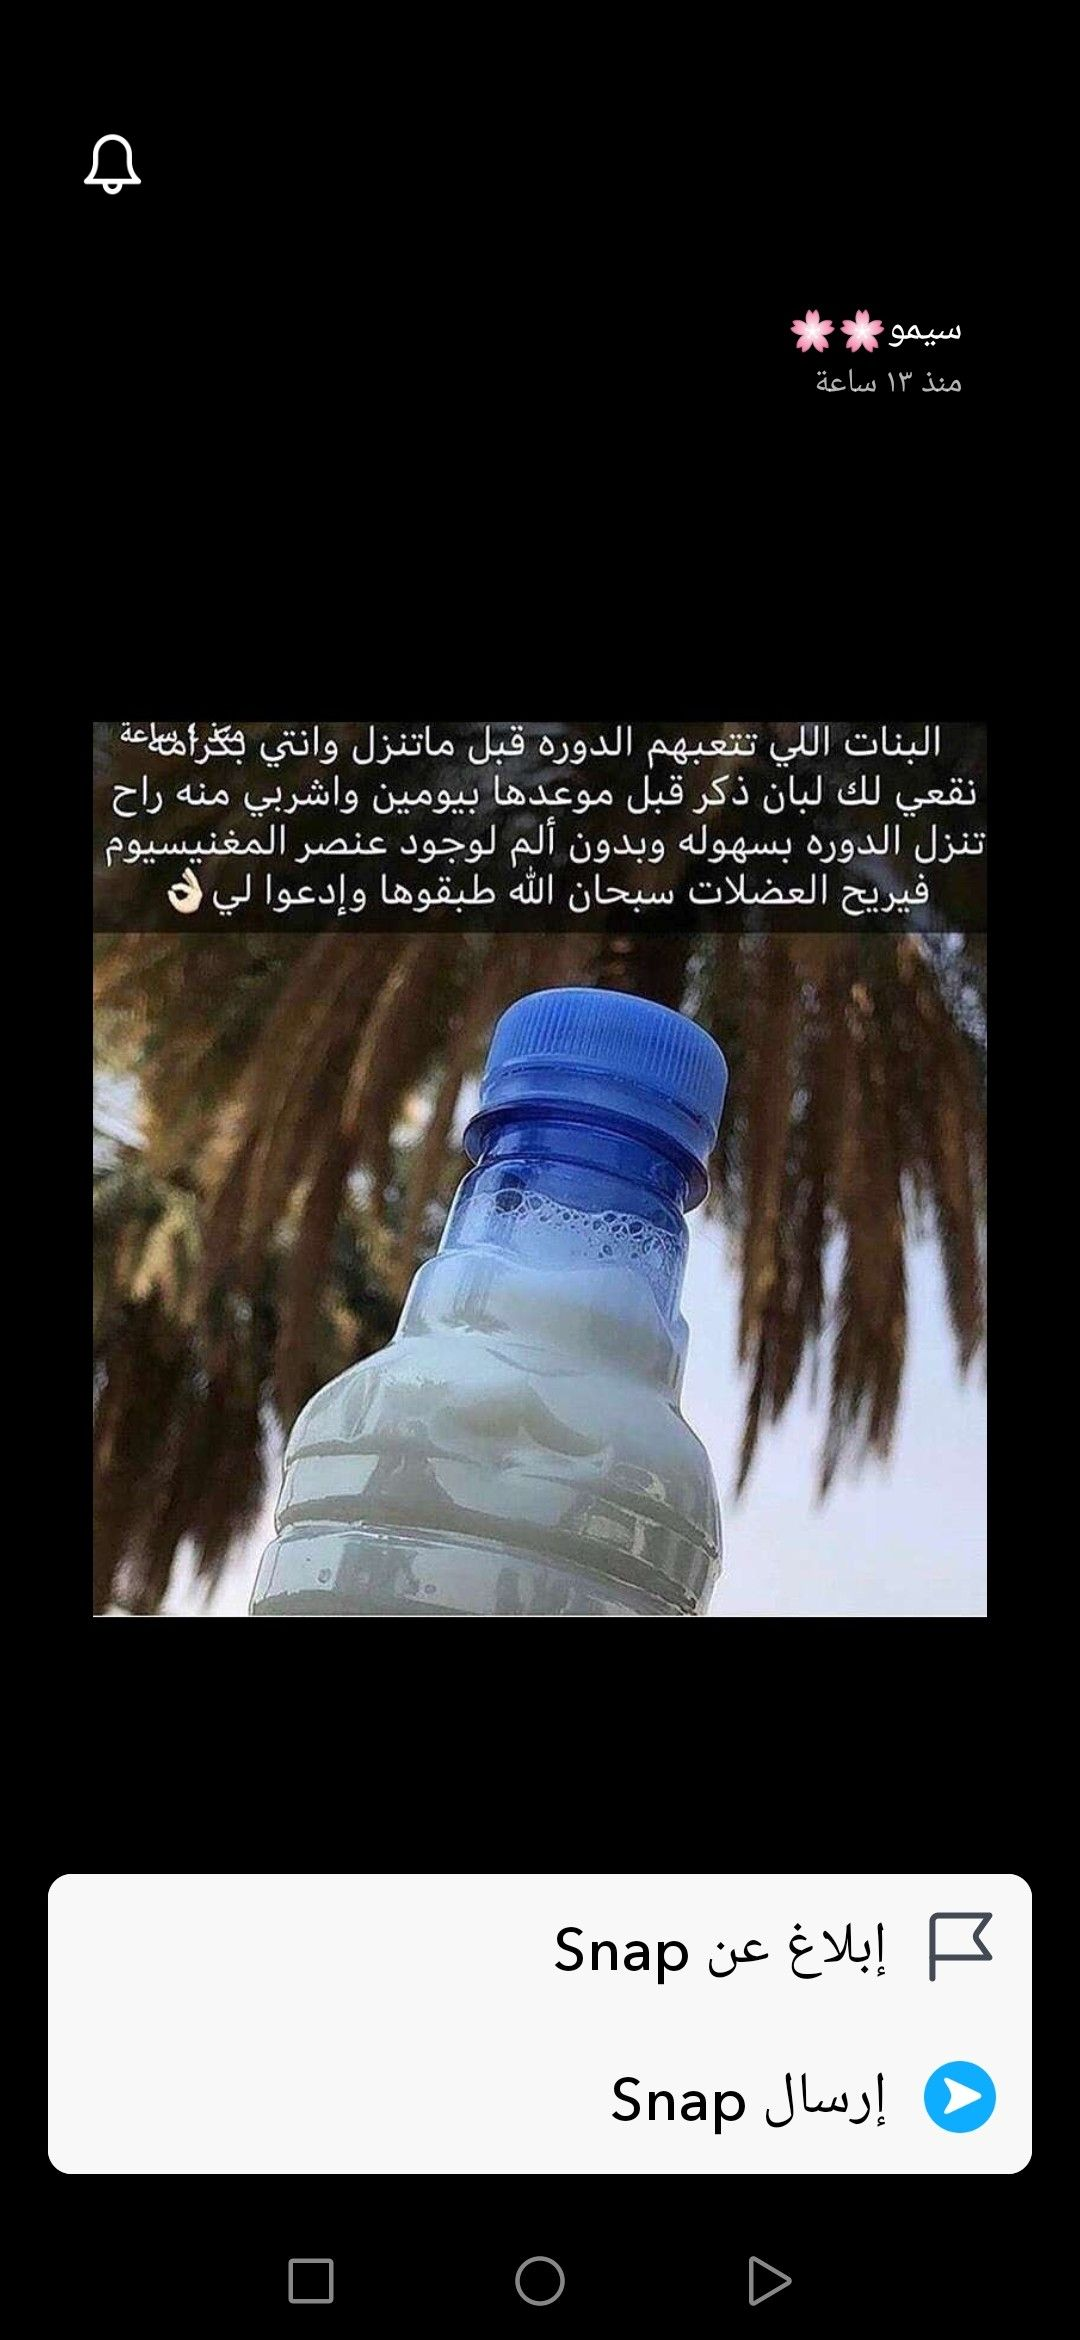 Pin By Smain On خلطات تعالج الوجع In 2020 Health Facts Fitness Beauty Skin Care Routine Beauty Skin Care